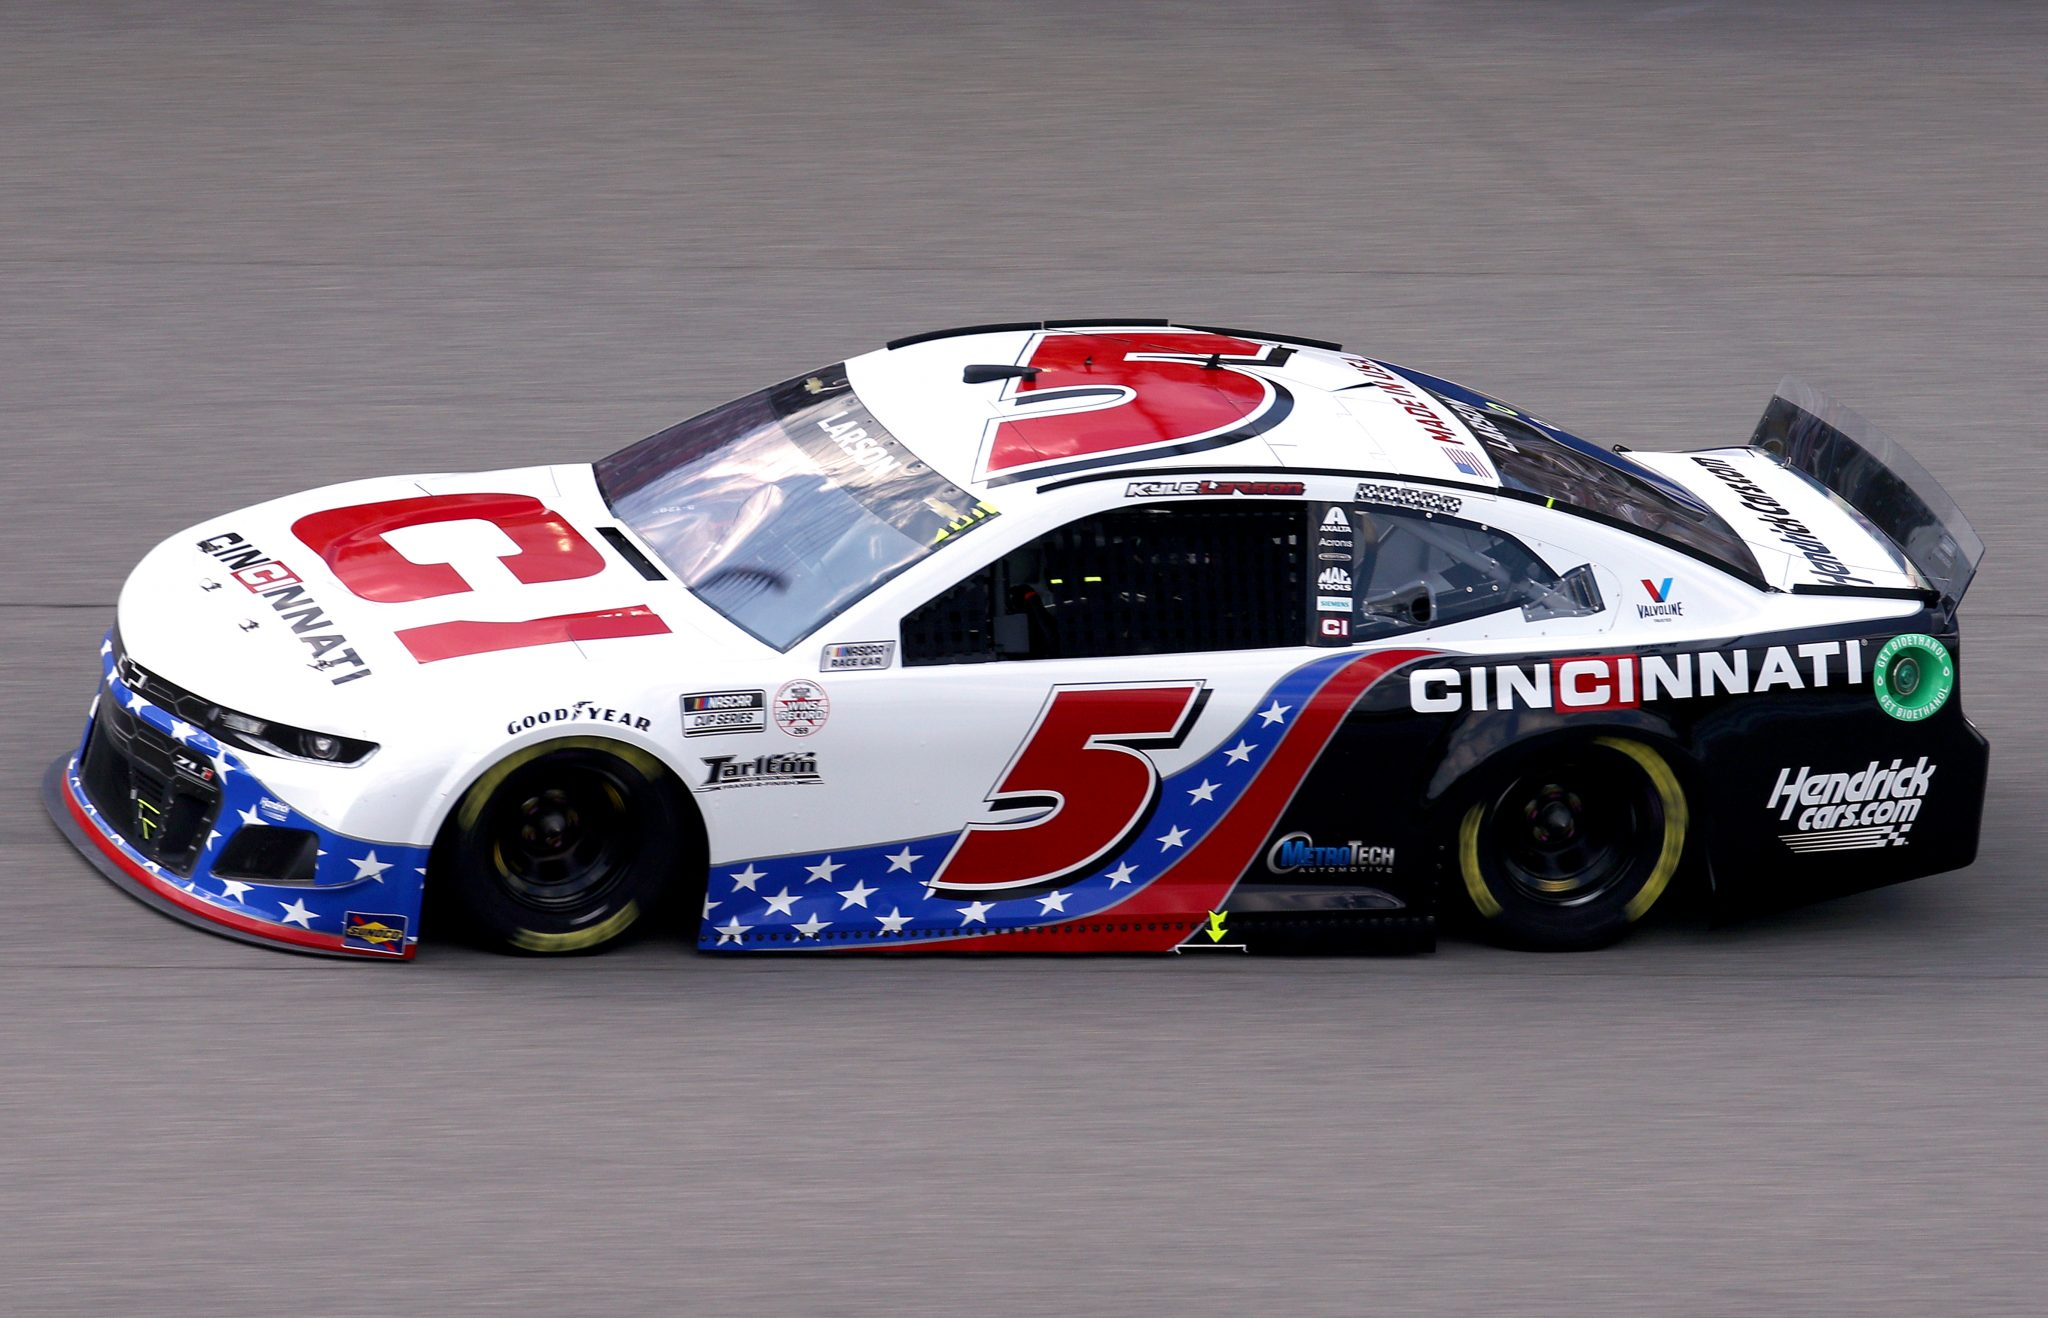 BROOKLYN, MICHIGAN - AUGUST 22: Kyle Larson, driver of the #5 Cincinnati Chevrolet, drives during the NASCAR Cup Series FireKeepers Casino 400 at Michigan International Speedway on August 22, 2021 in Brooklyn, Michigan. (Photo by Sean Gardner/Getty Images) | Getty Images